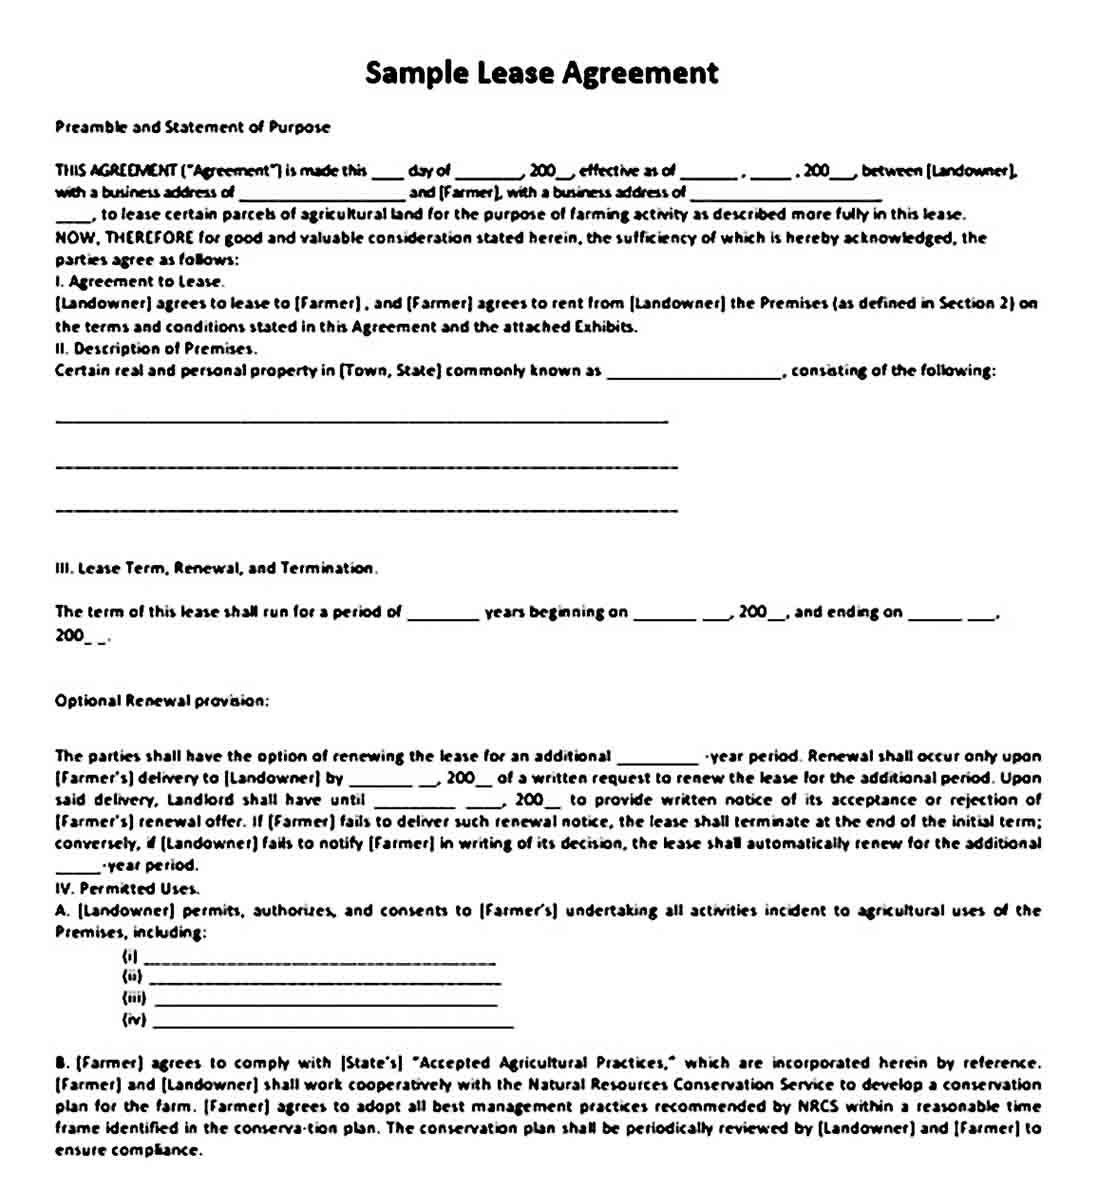 Sample Land Lease Agreement Lease Agreement Rental Agreement Templates Lease Simple land lease agreement template